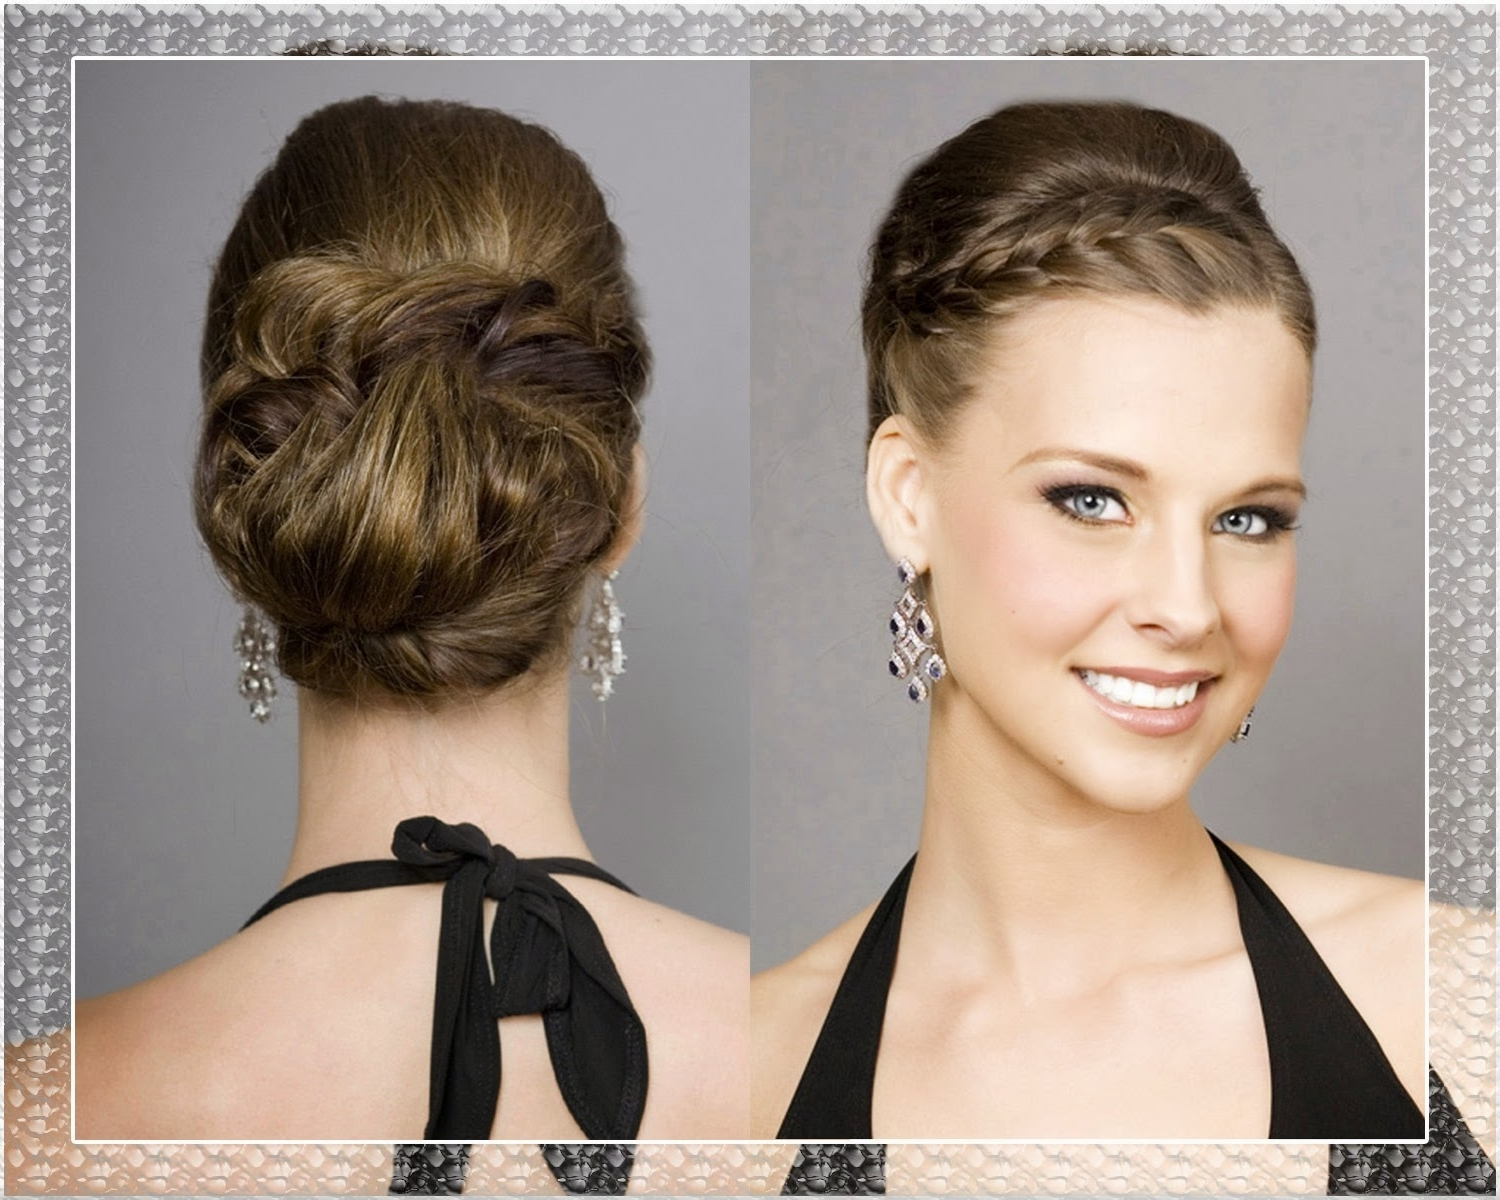 Hairstyle Ideas In 2018 Throughout Preferred Bridesmaid Hairstyles For Short Black Hair (View 7 of 15)